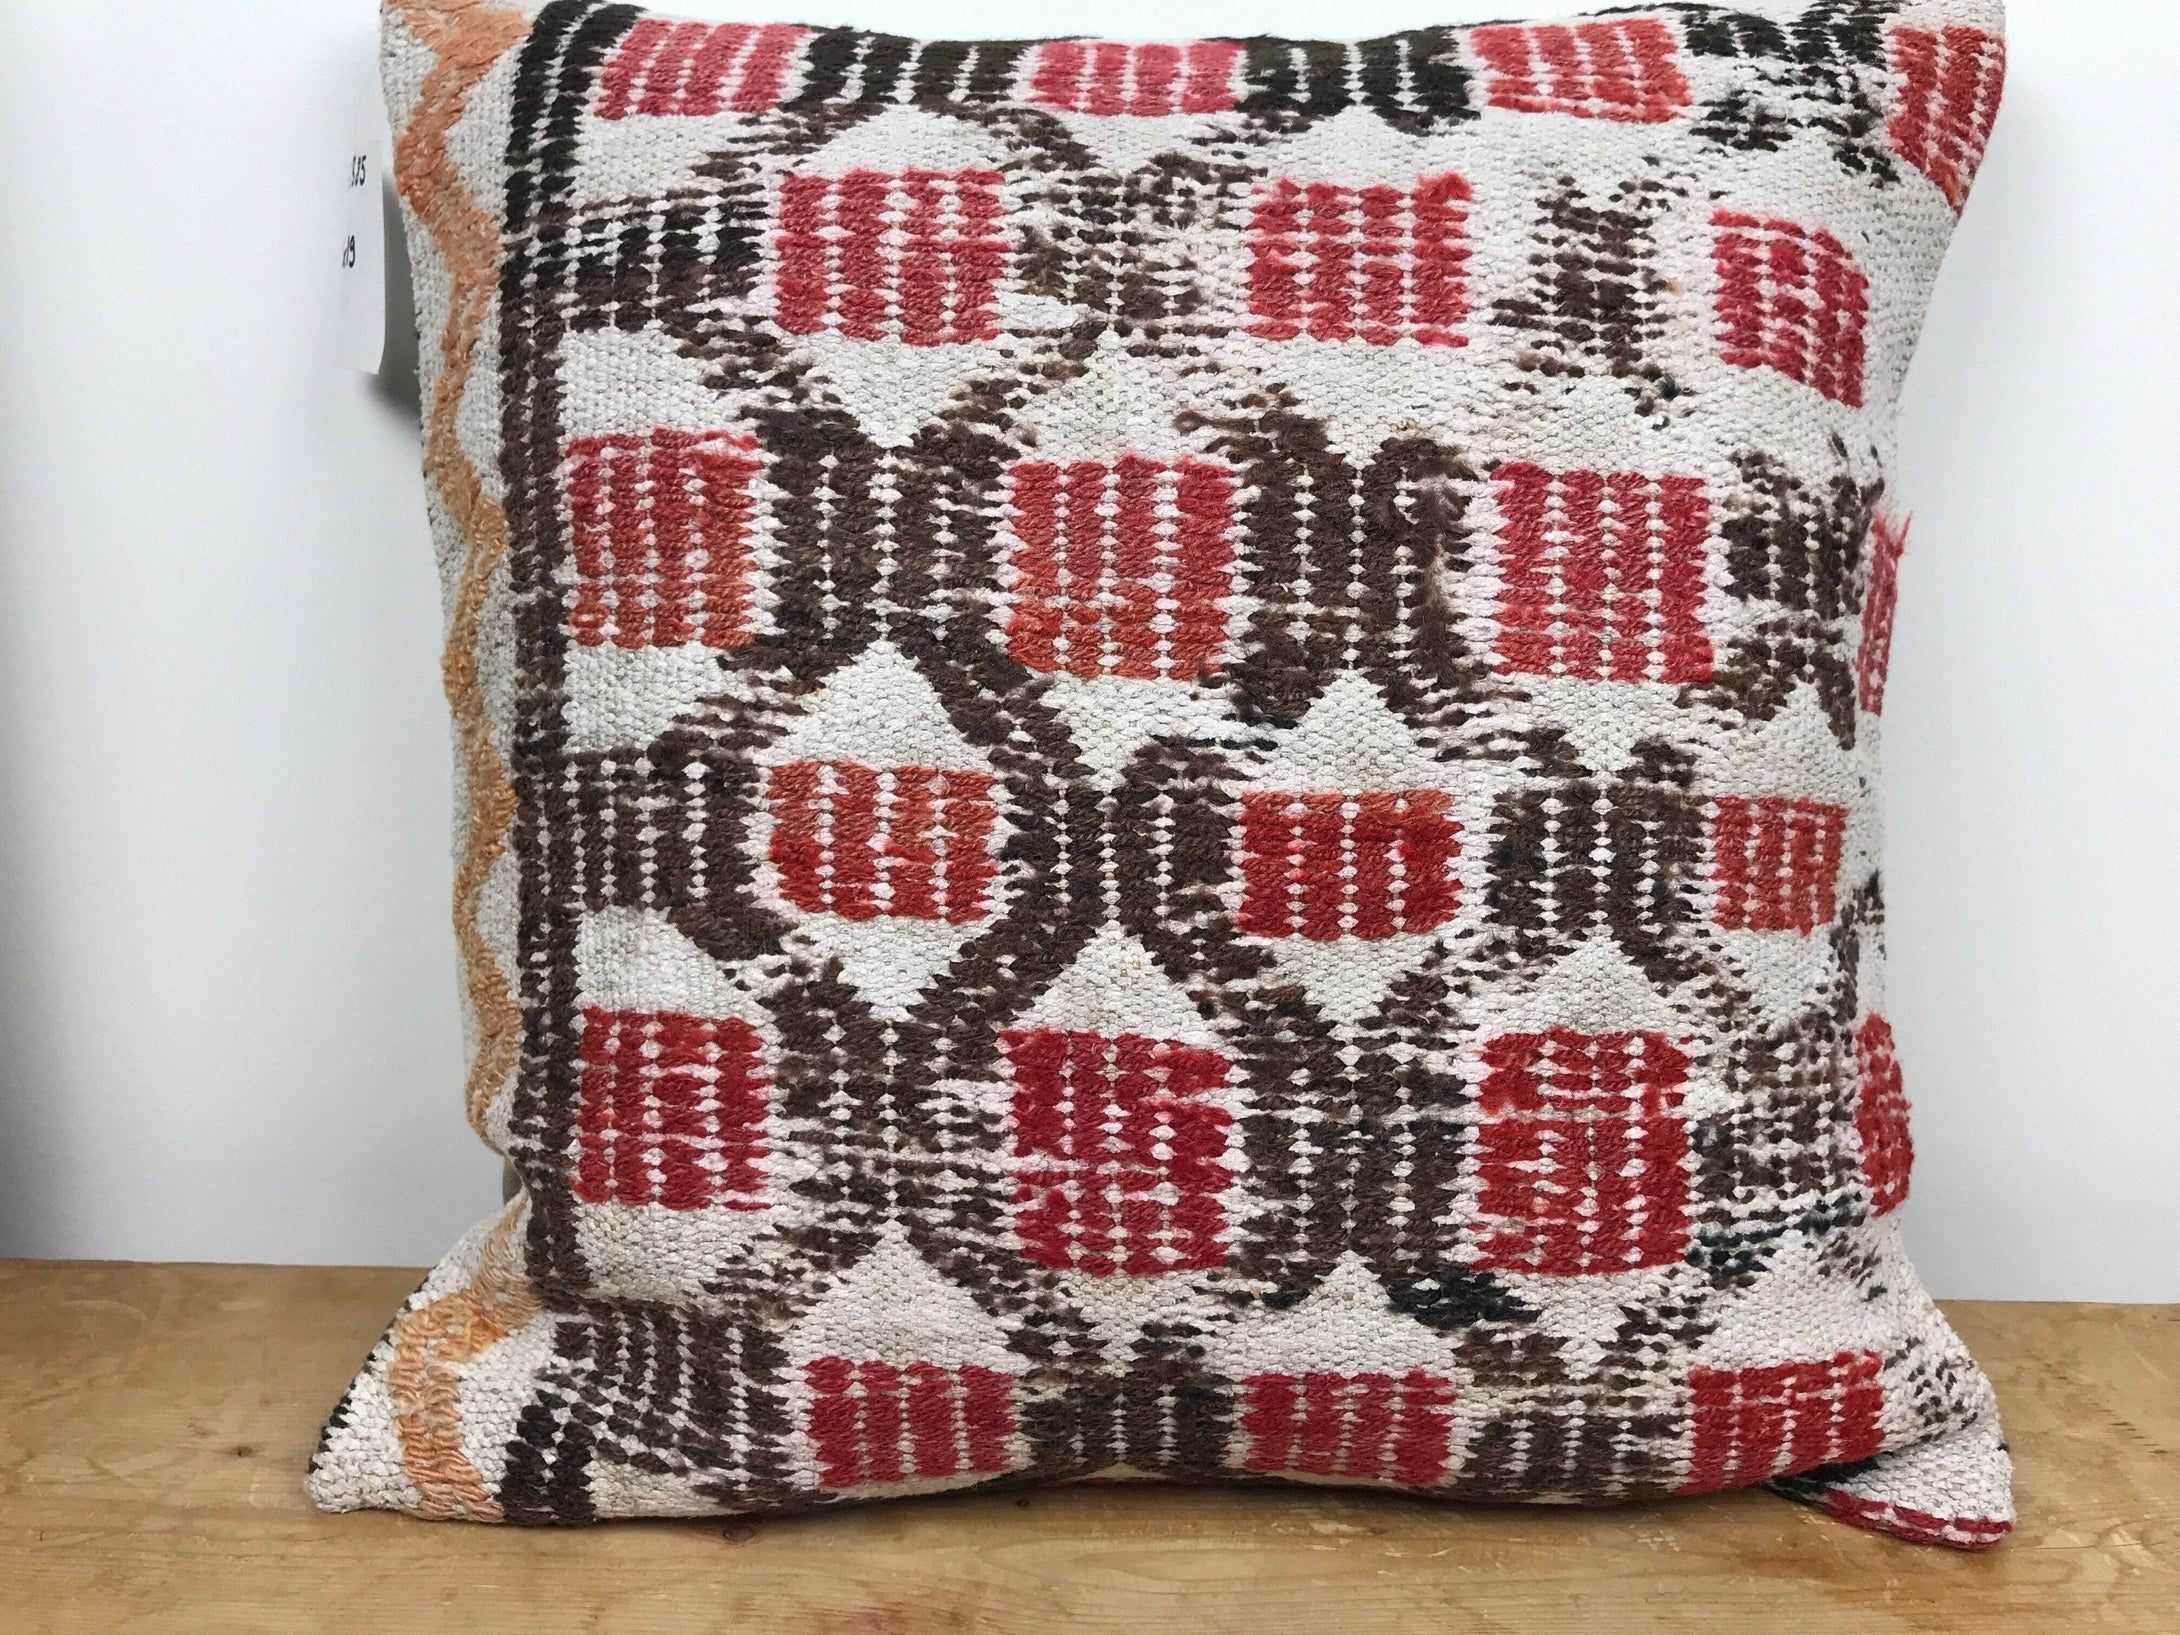 Vintage Turkish Kilim Pillow 19